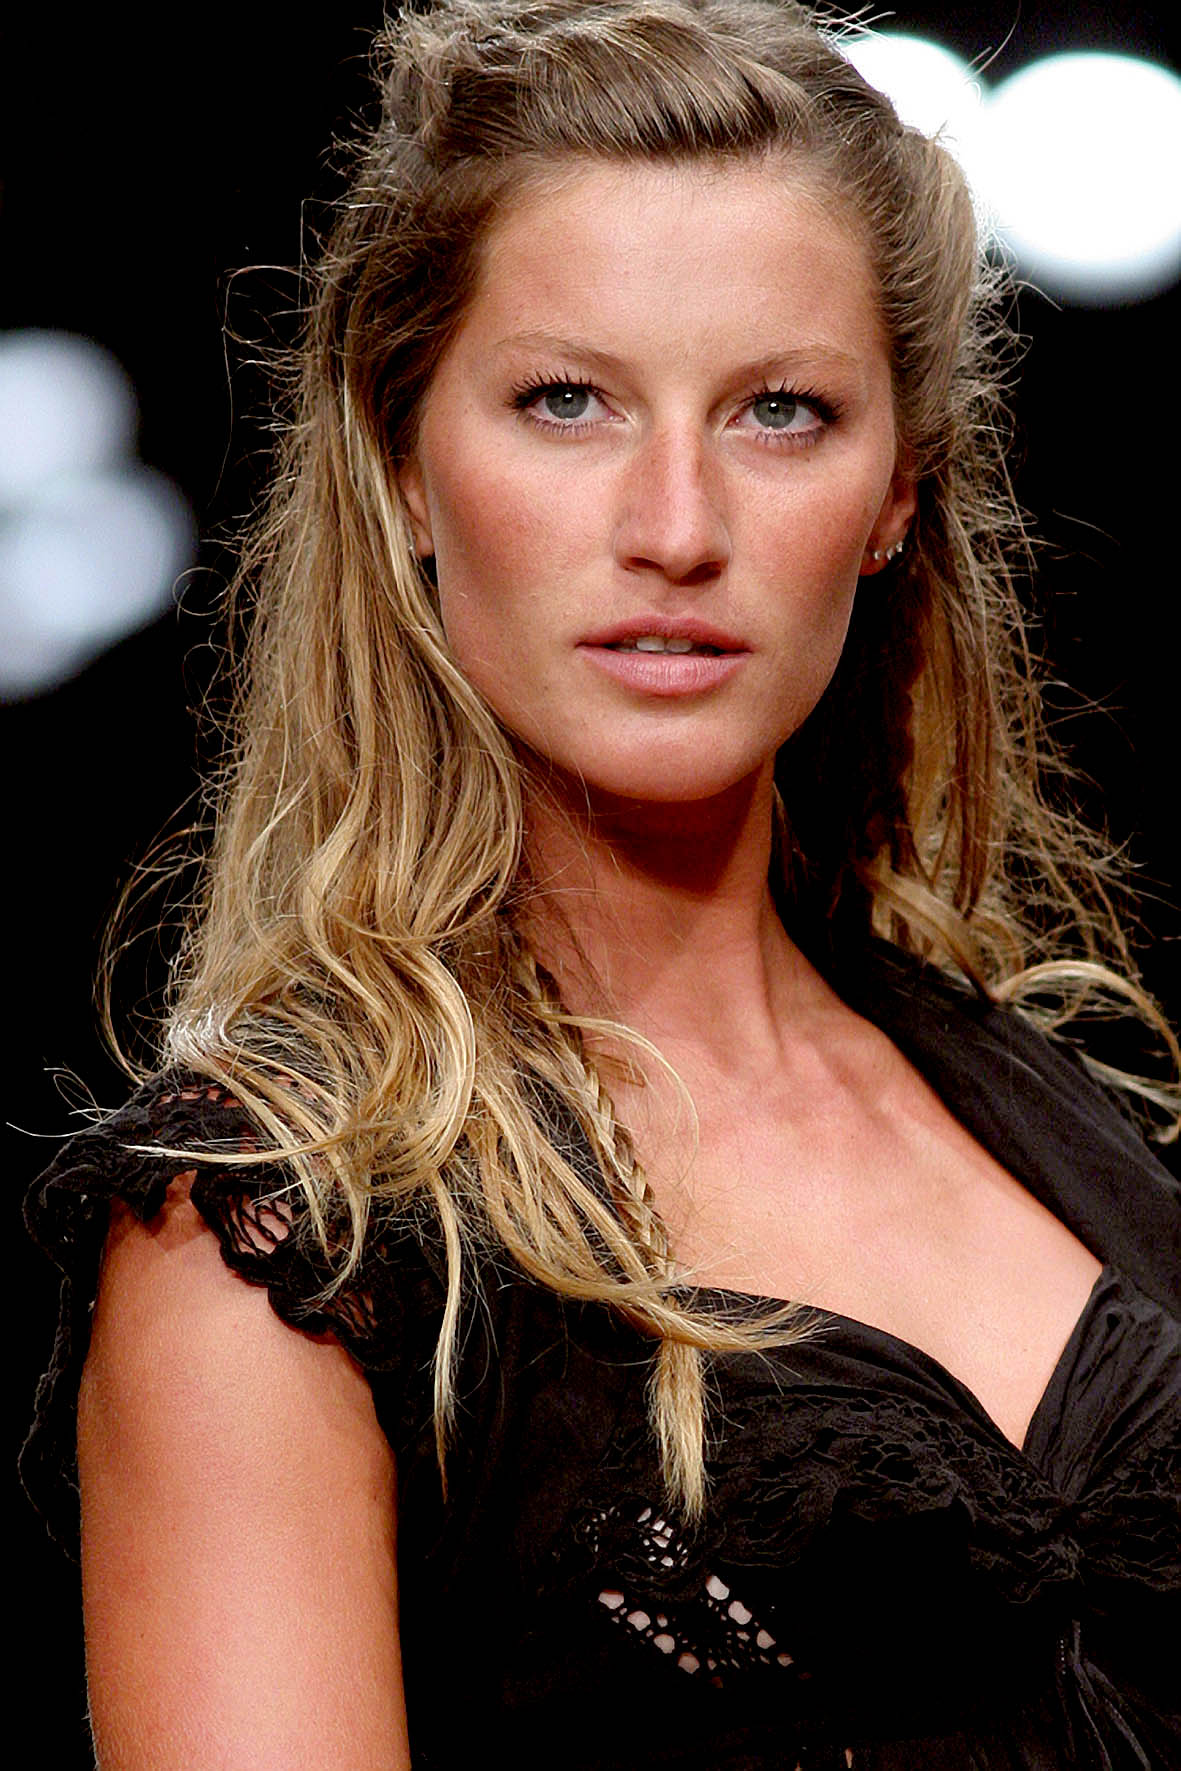 gisele bundchen breast